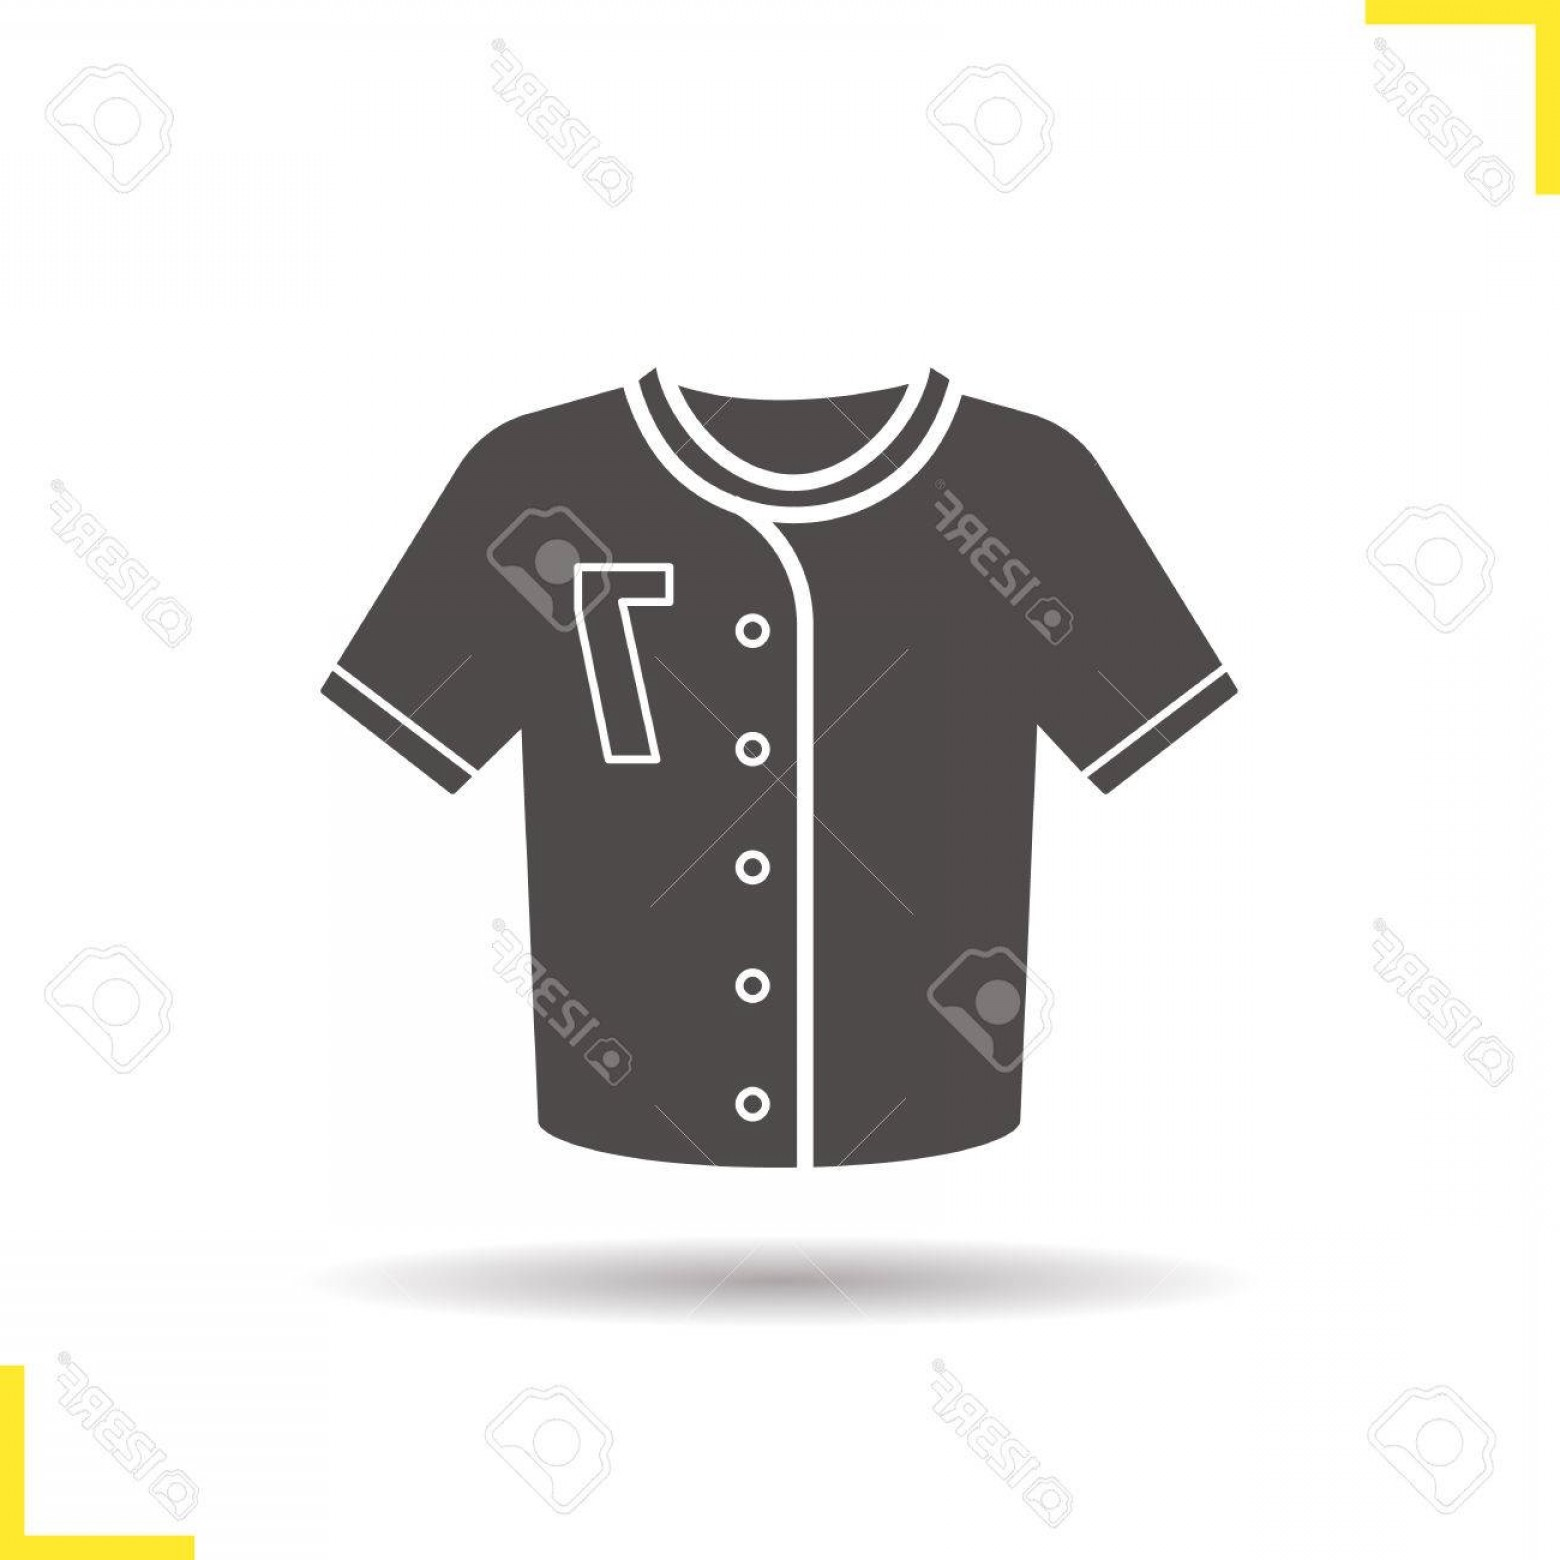 Vector Pocket Silhouette Shirt: Photostock Vector Baseball T Shirt Icon Negative Space Drop Shadow Silhouette Symbol Softball Player S Uniform Shirt V